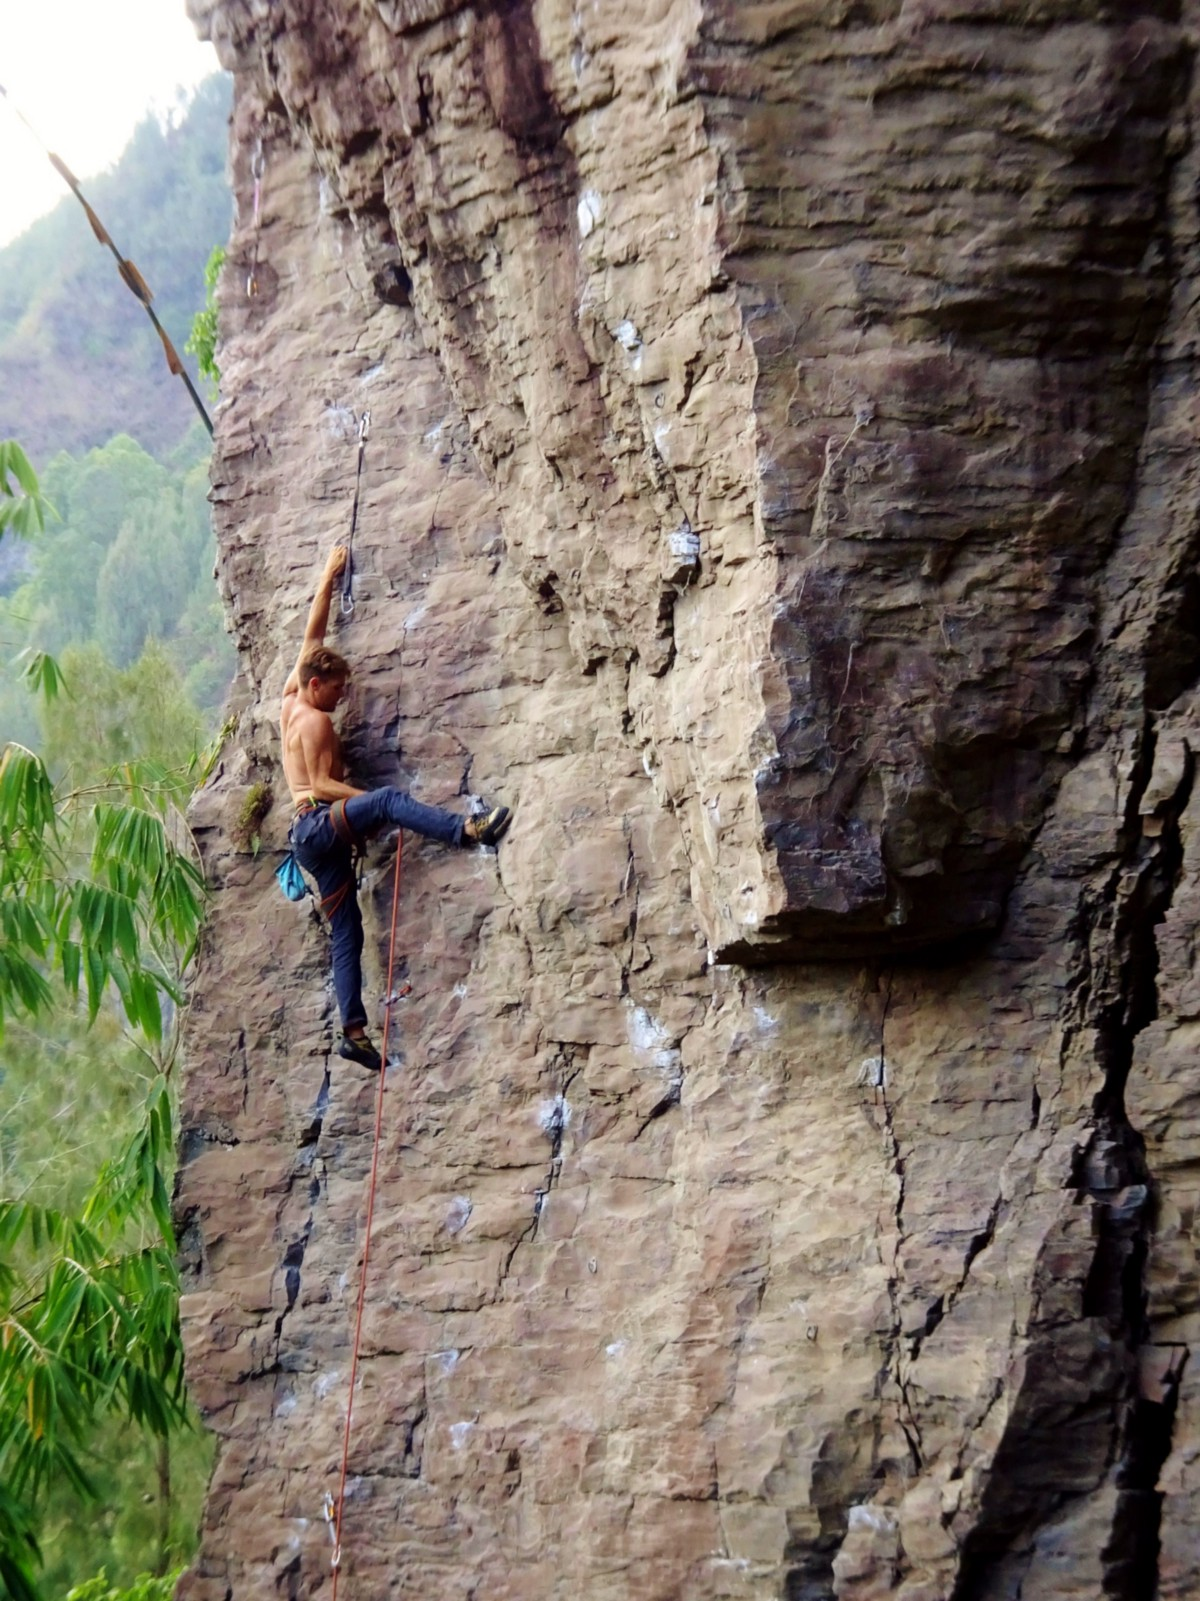 Rock Climbing In Bali This Is A Post Written Out Of A